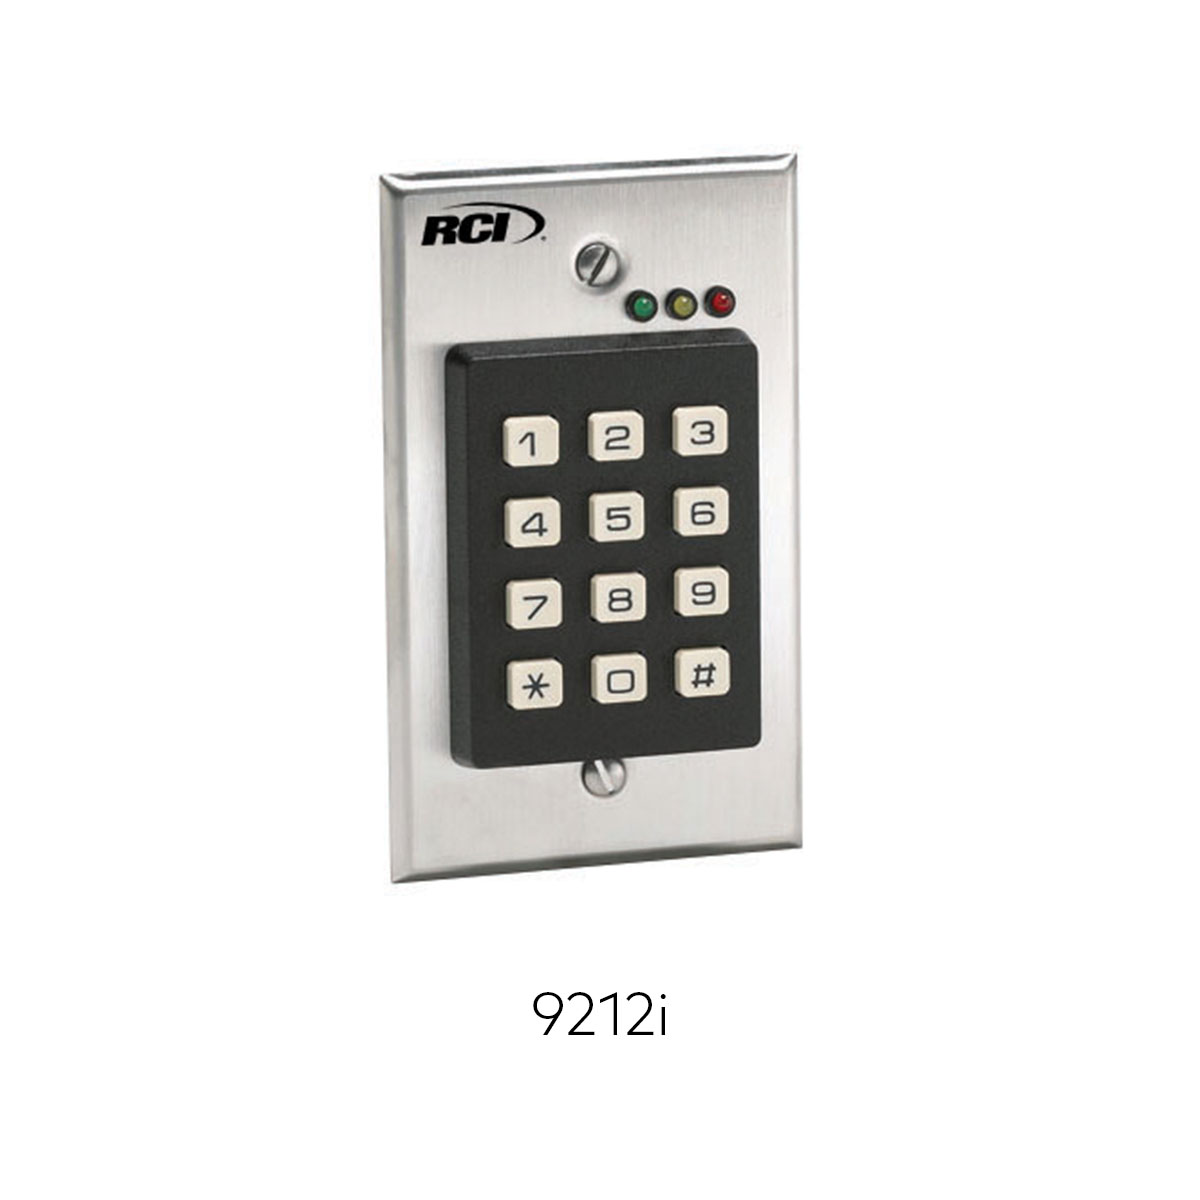 9212 Keypad Readers Credentials Rci Dormakaba Four Digit Operated Switch 9212i Ead